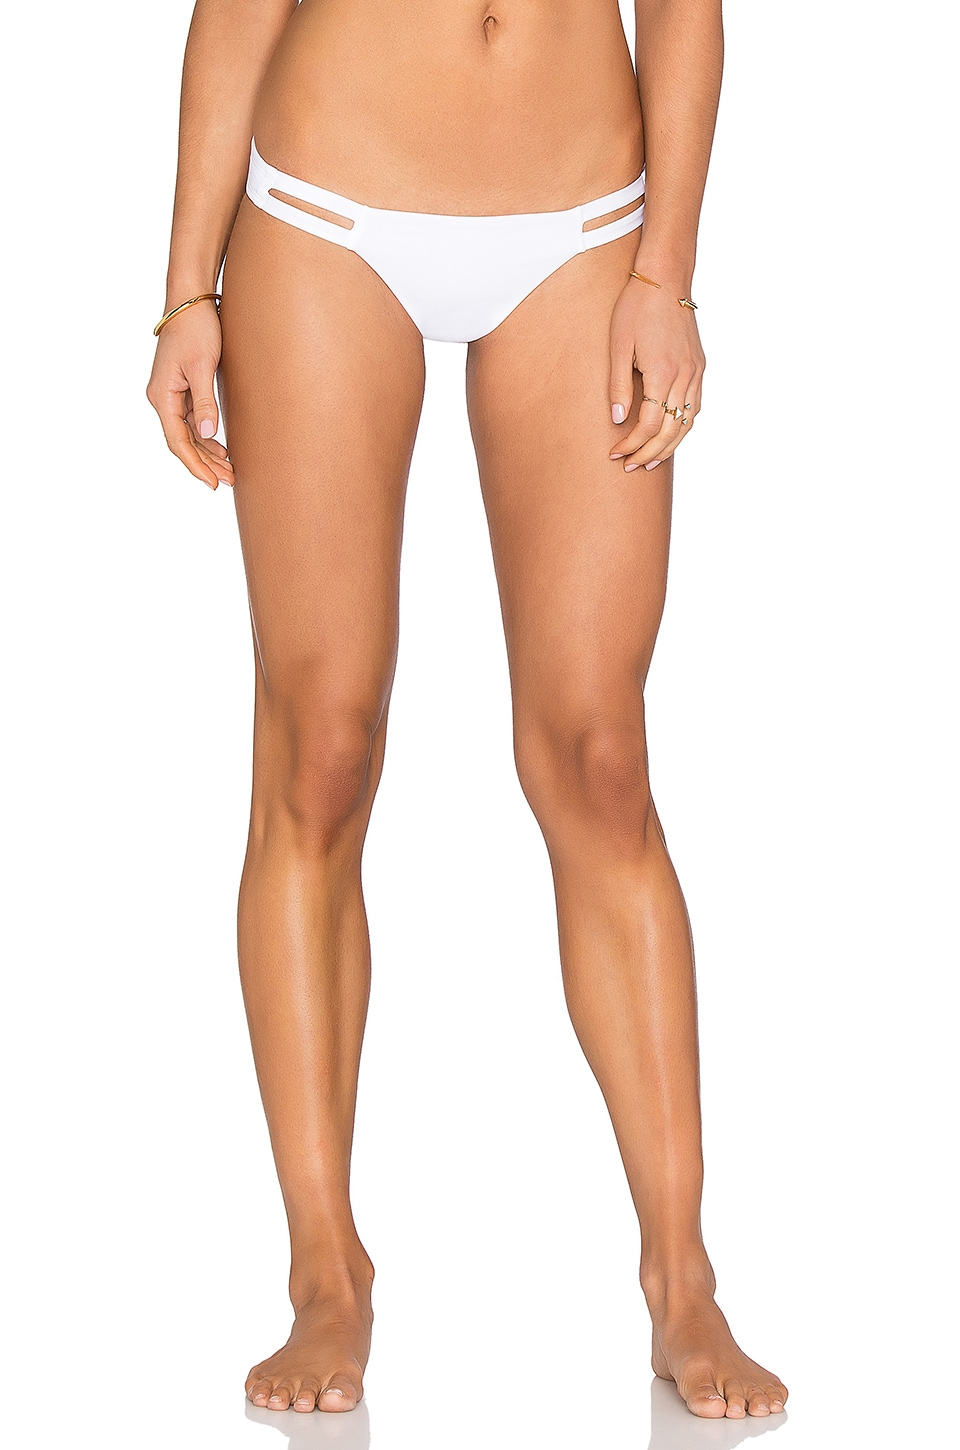 vitamin A Neutra Hipster Bikini Bottom in Eco White